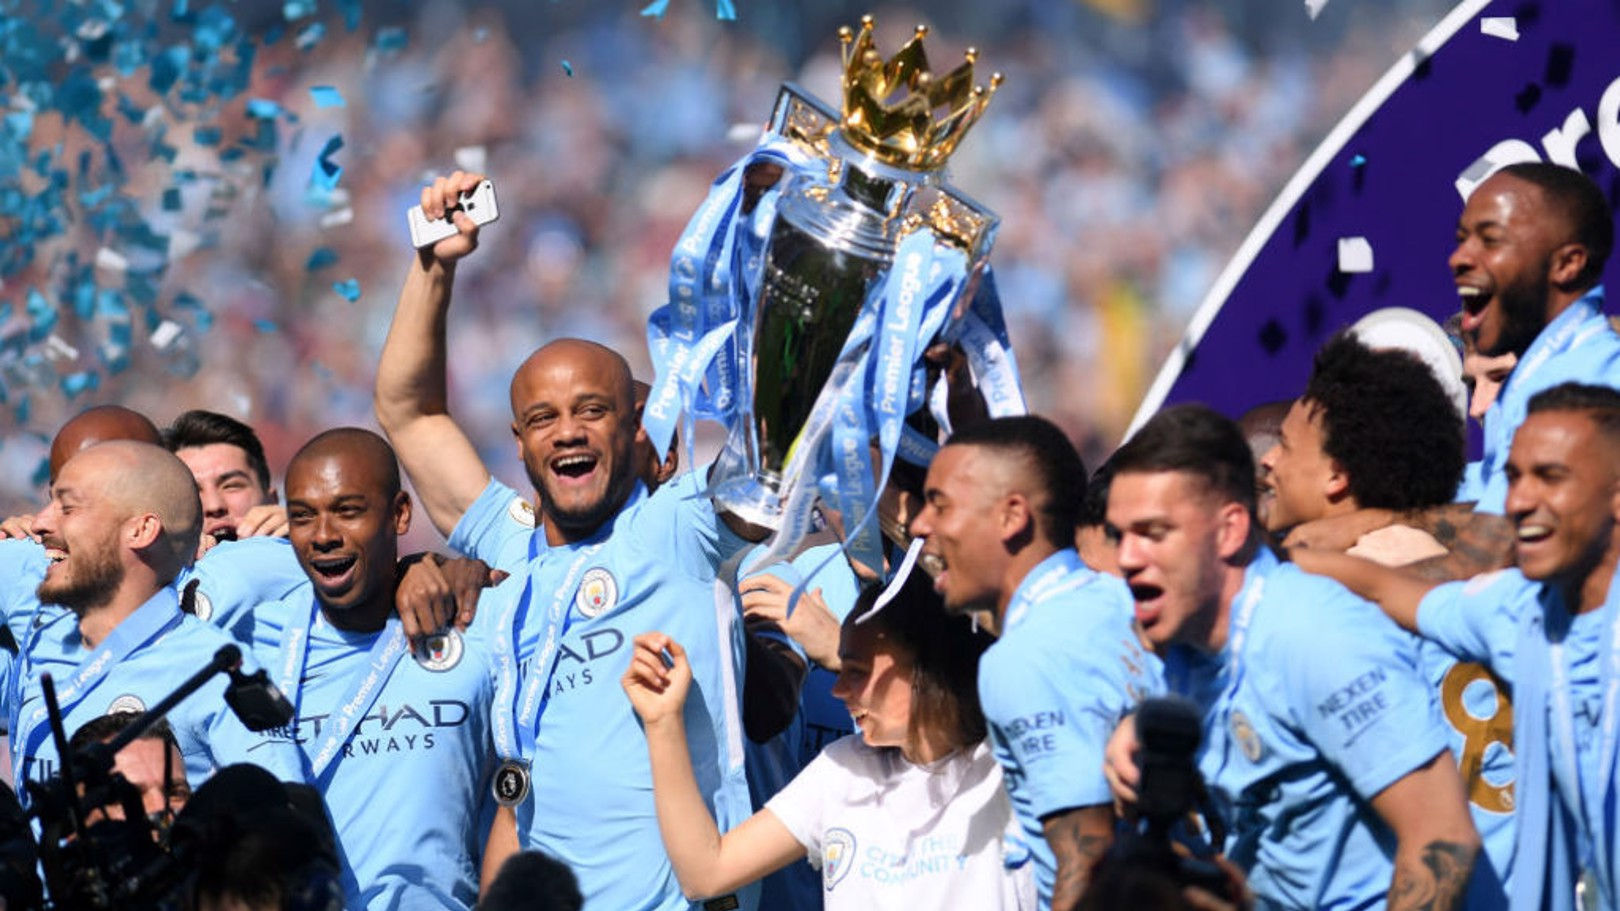 CHAMPIONS: Kompany has praised the impact of Guardiola